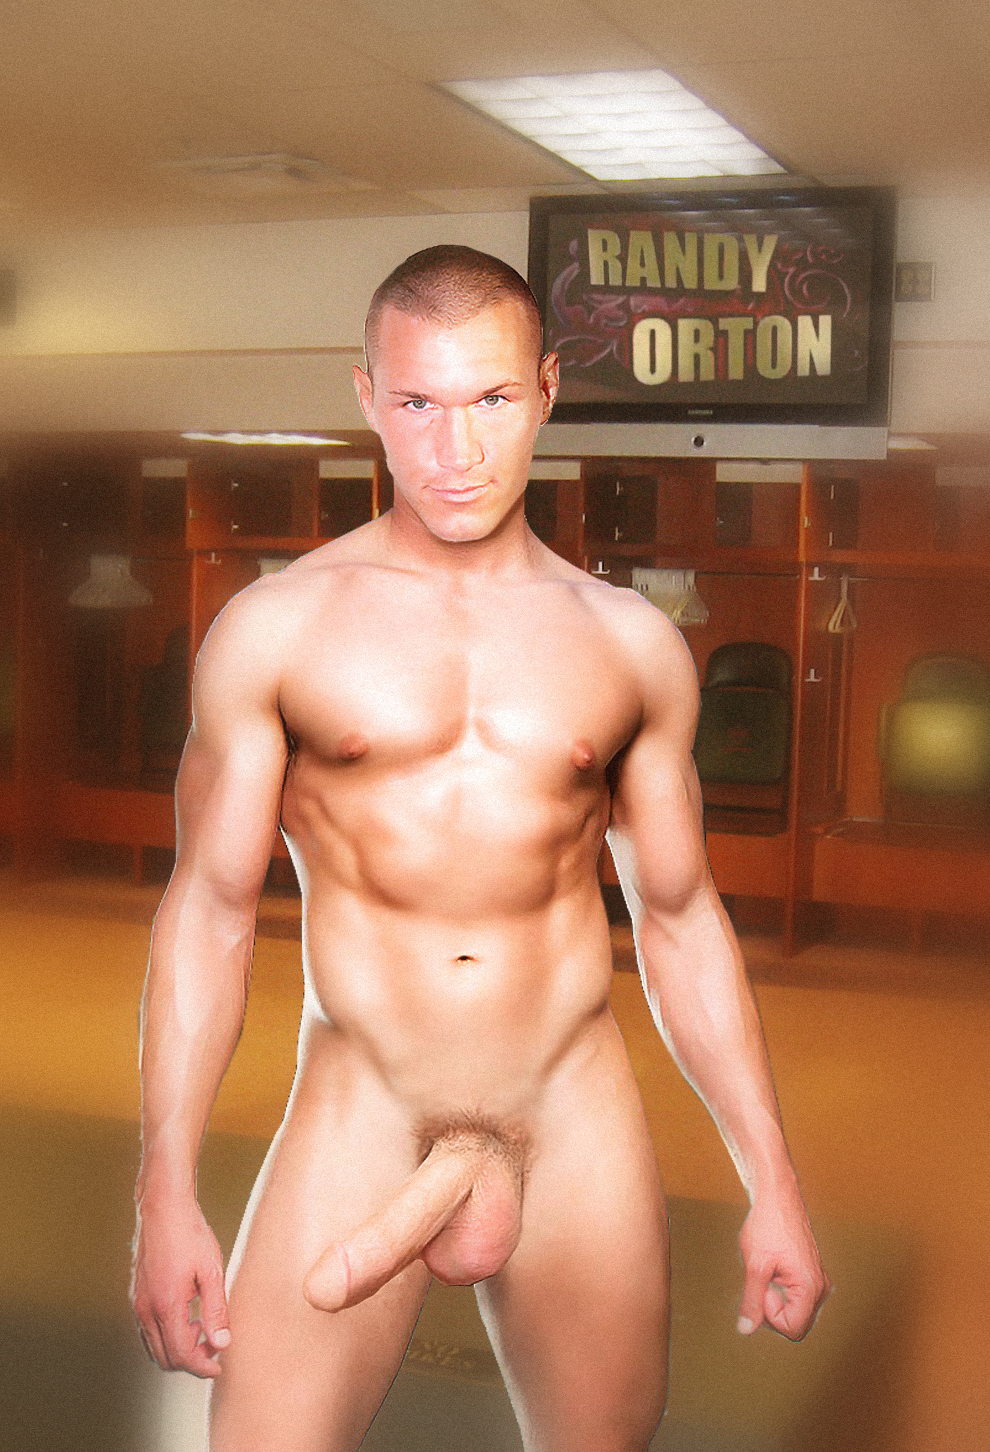 Randy orton nudo think, what